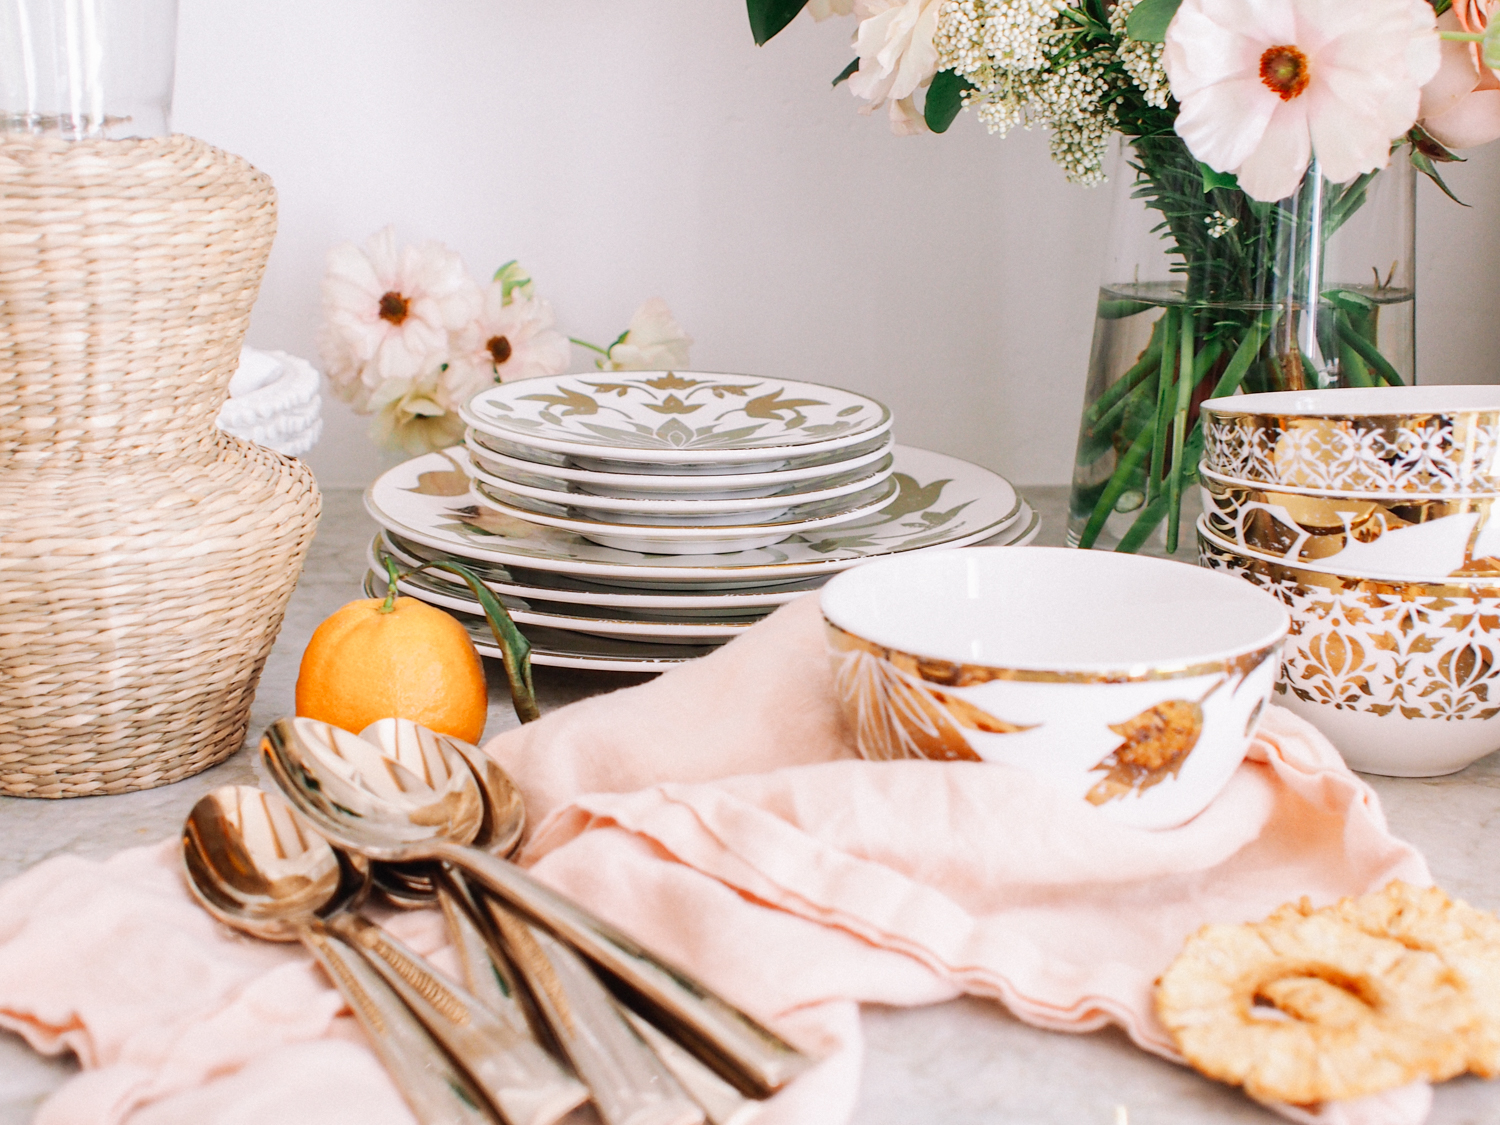 How To Host An Easy Brunch | A Fabulous Fete